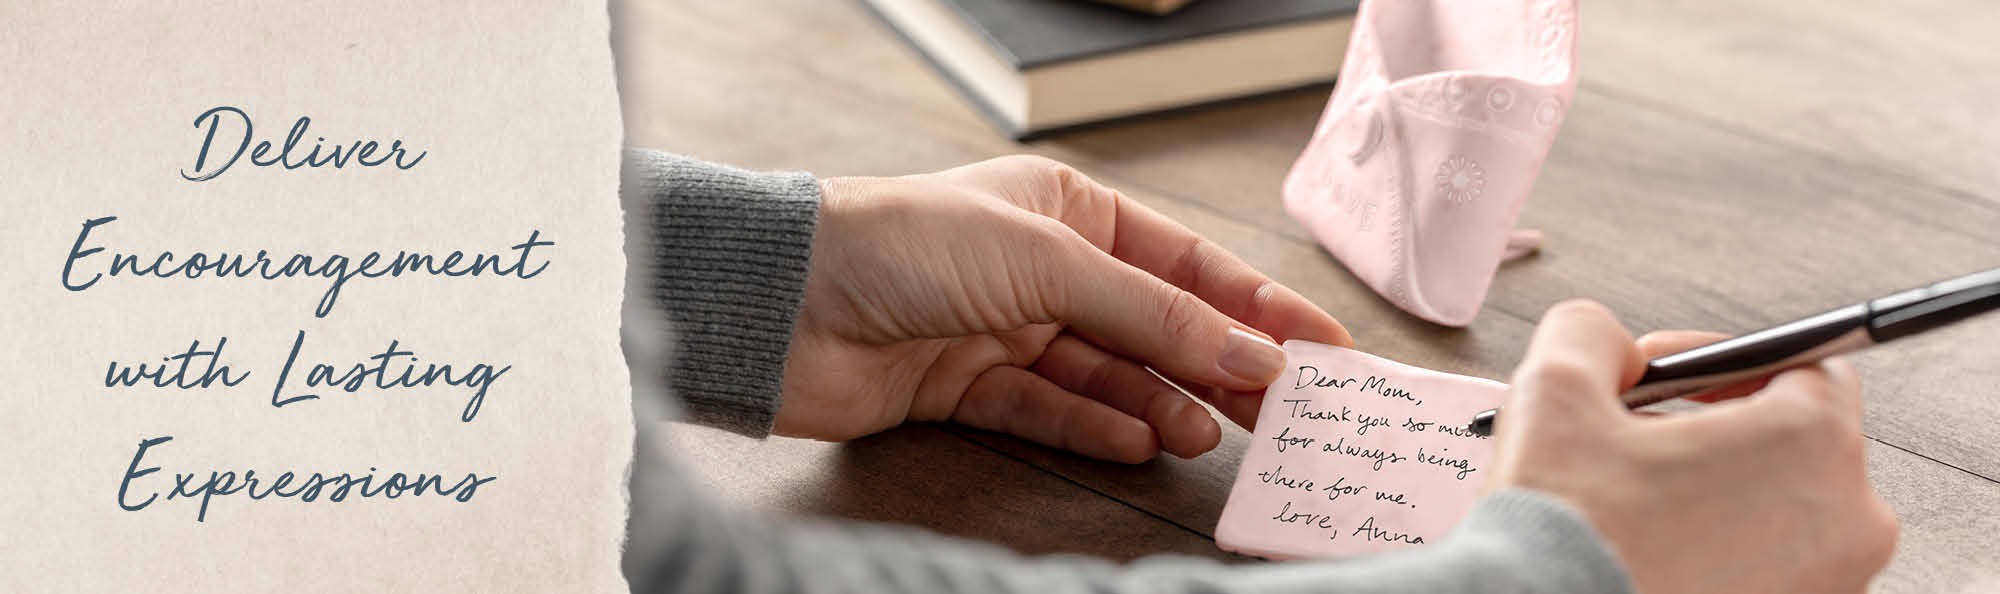 Deliver encouragement with Lasting Expressions. Woman writing a note on a card.